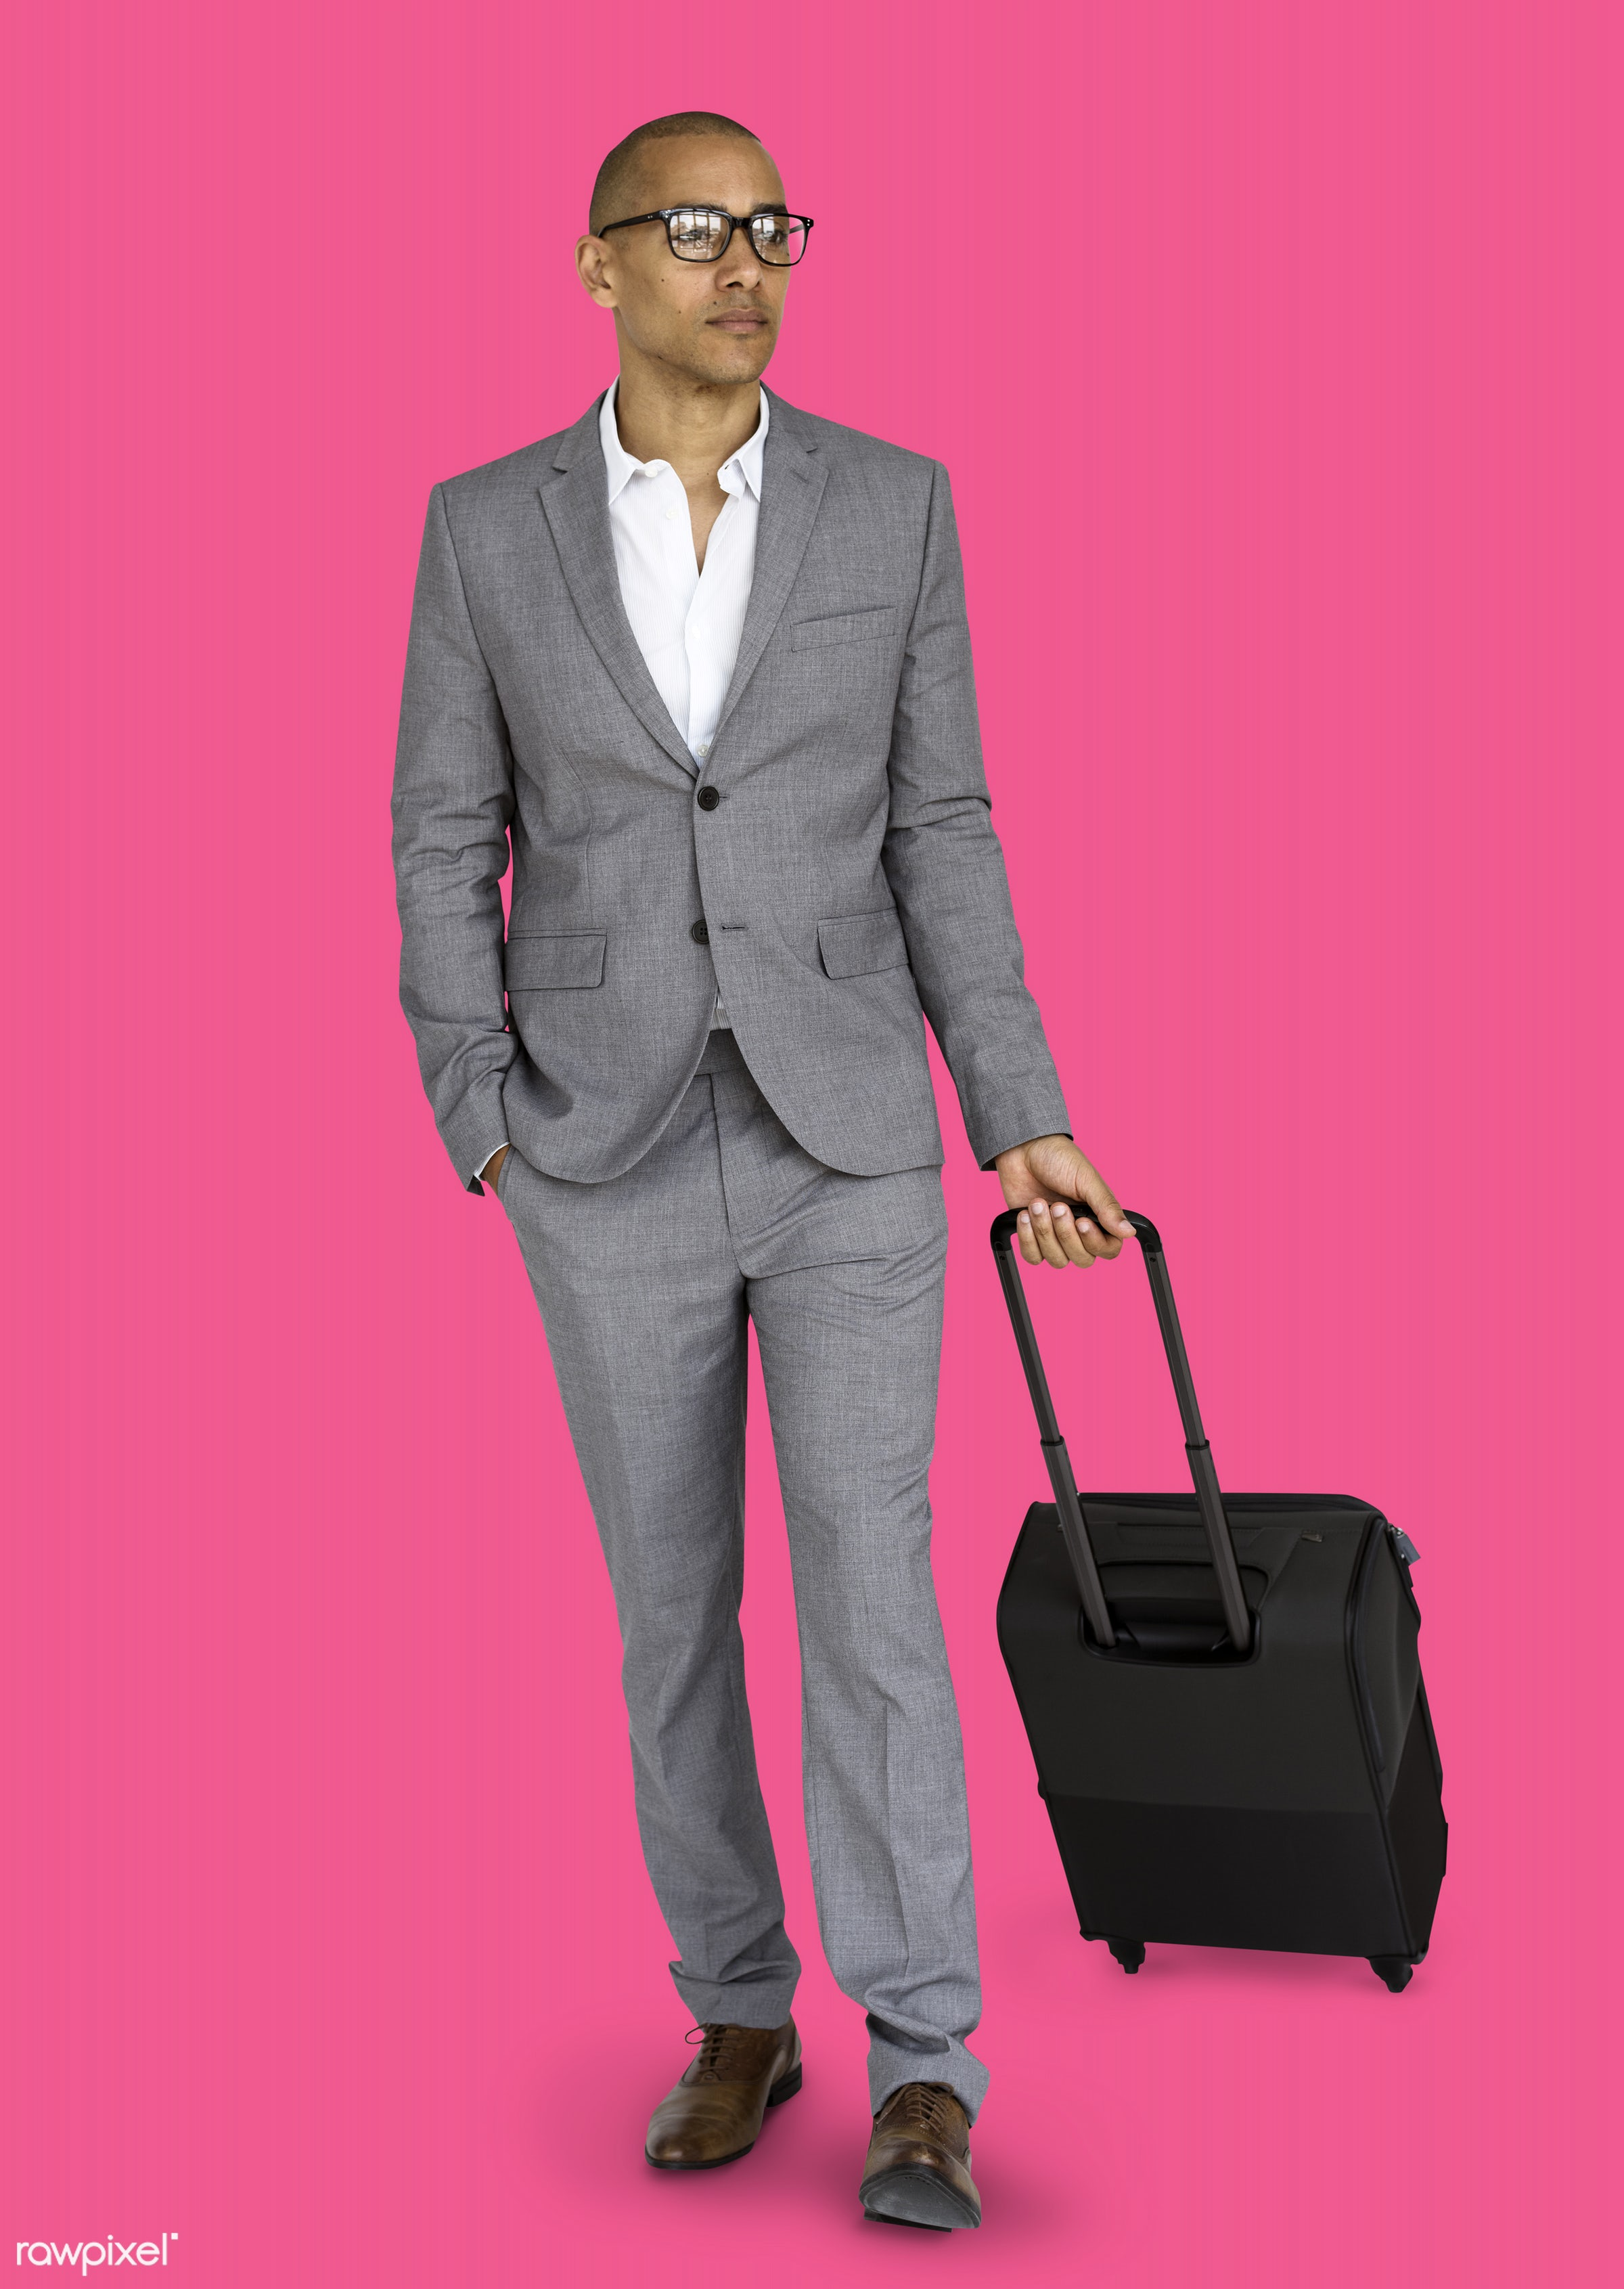 studio, face, person, glasses, travel, people, business, businessman, pink, trip, man, isolated, suitcase, male, traveler,...